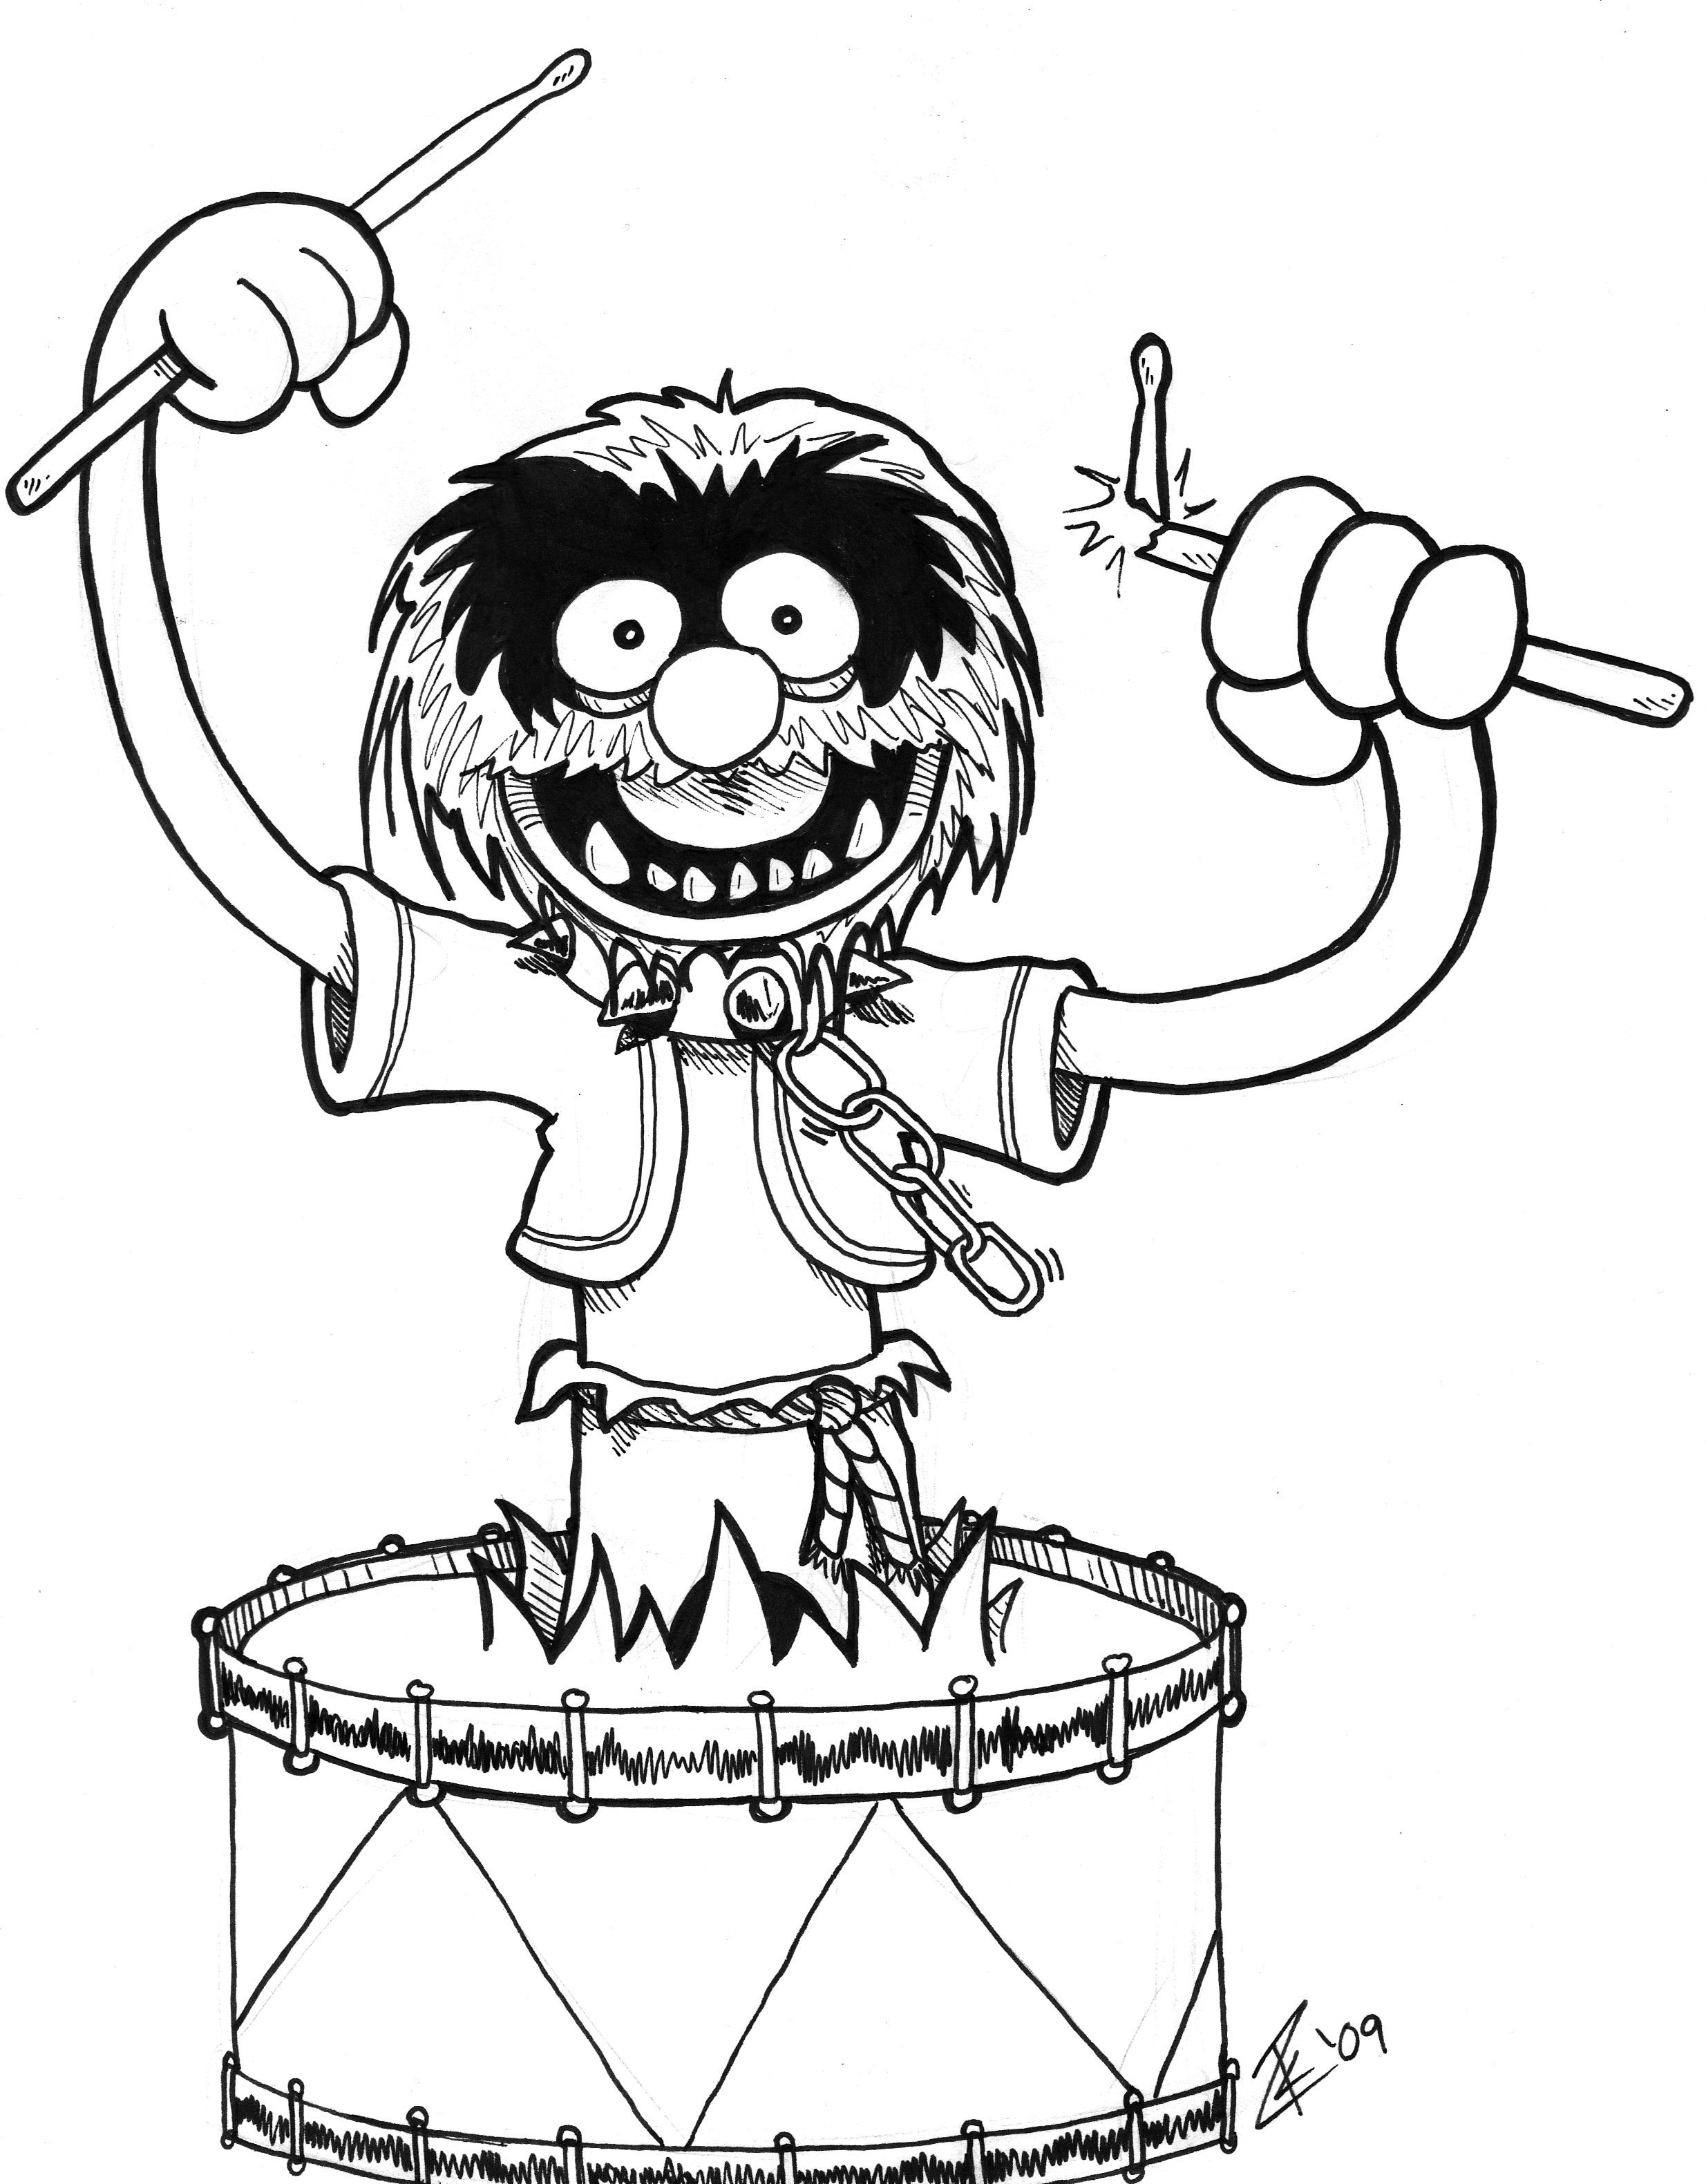 drum drawings | Animal from the Muppets. Drawn during Heroes Con \'09 ...